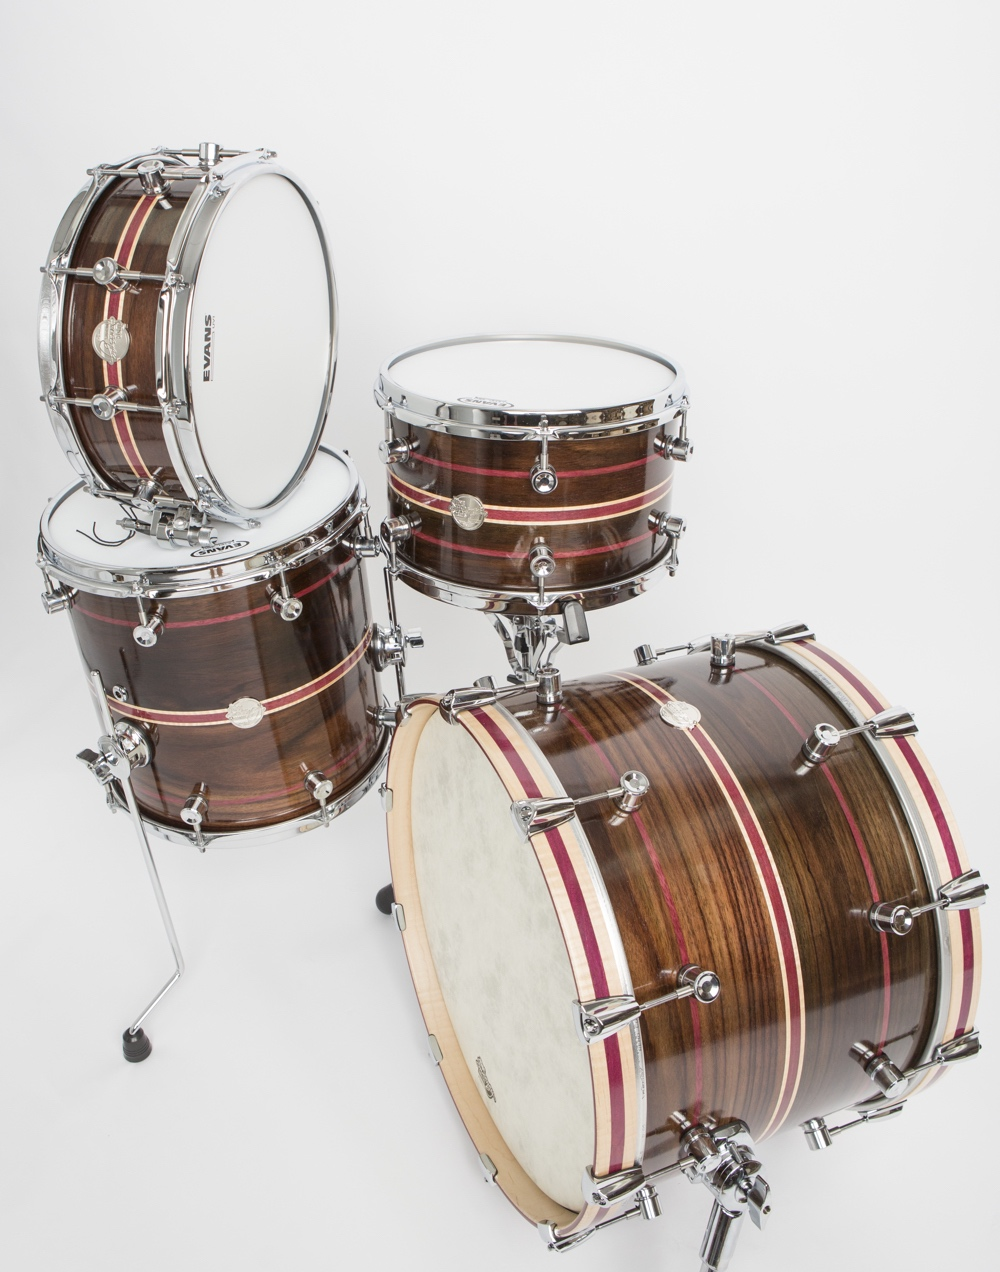 "Doc Sweeney's Panther Kit inlay (comprising a 20"" x 14"" bass drum; 14"" x 14"" and 13"" x 8"" mounted toms; and 14"" x 5.5"" snare drum) is made of steam-bent East Indian rosewood with purpleheart and maple inlays. It also features curly maple hoops with purpleheart. Have you ever seen another complete kit made of solid rosewood?"